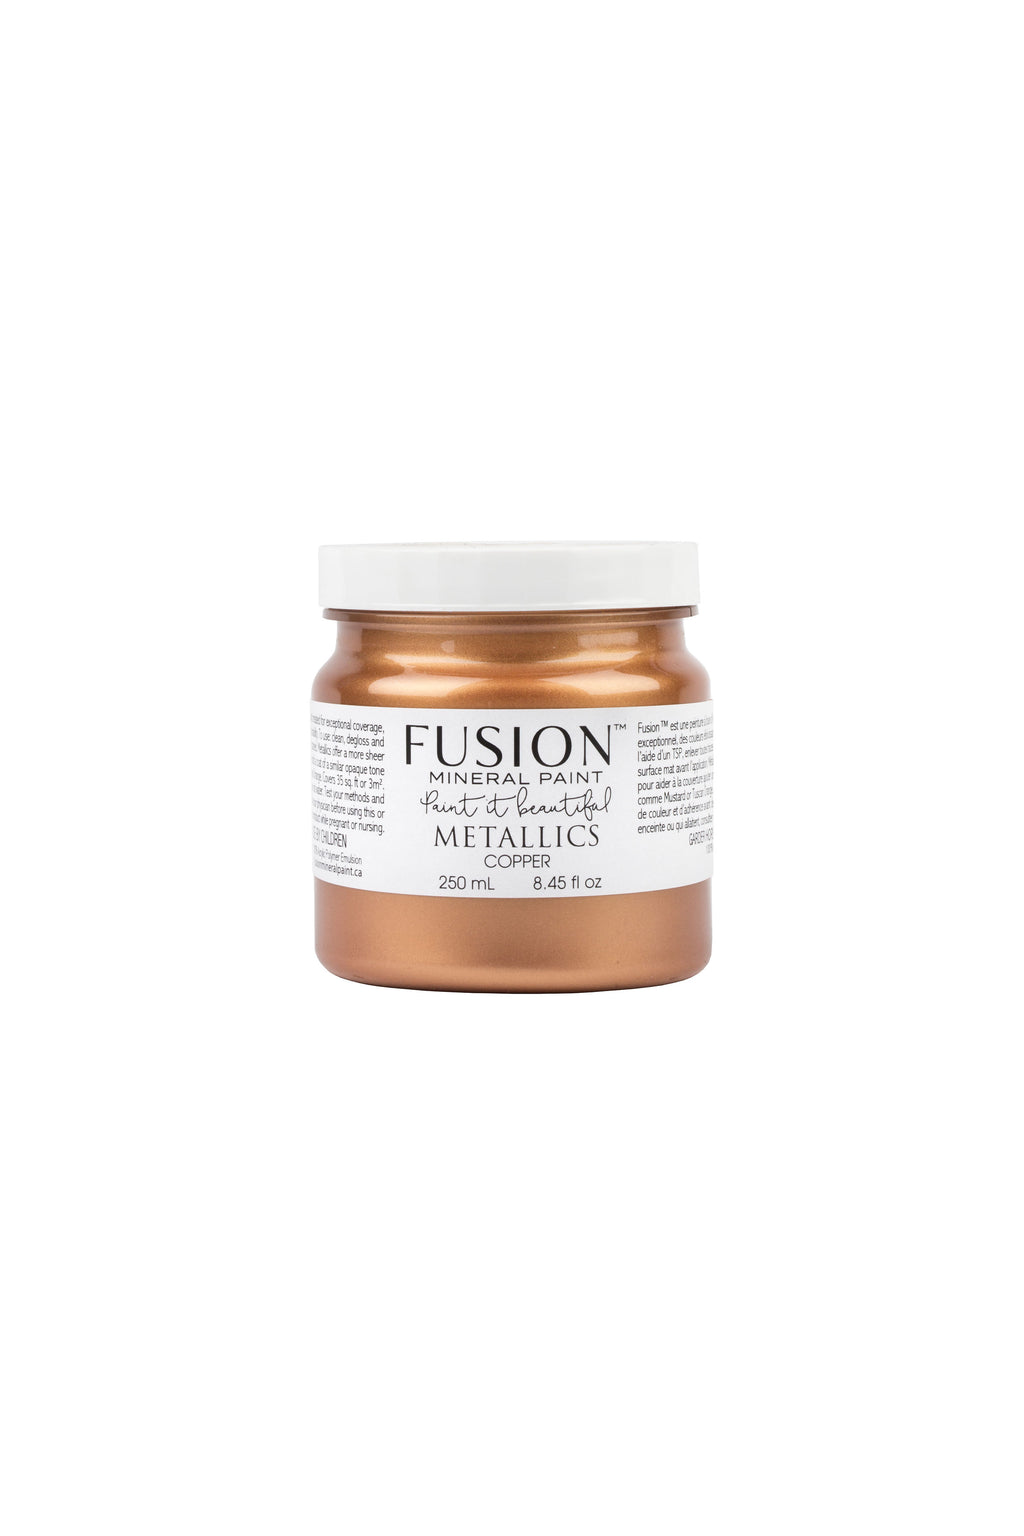 Fusion Mineral Paint-Metallic Copper